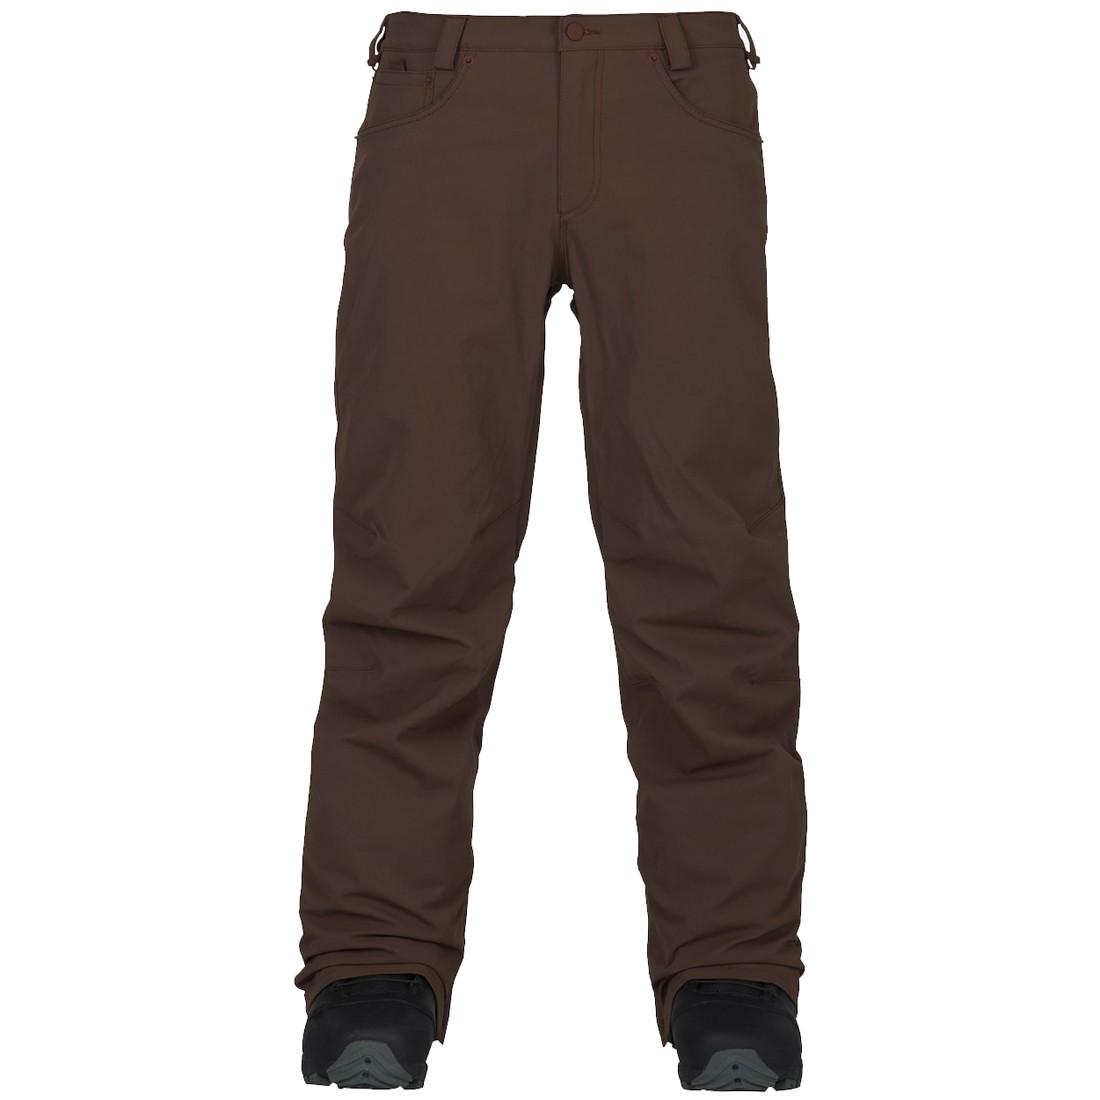 Burton Штаны для сноуборда Burton Wolfeboro Pant Chestnut, , , FW18 S burton термобелье burton midweight base layer pant true black fw18 xl